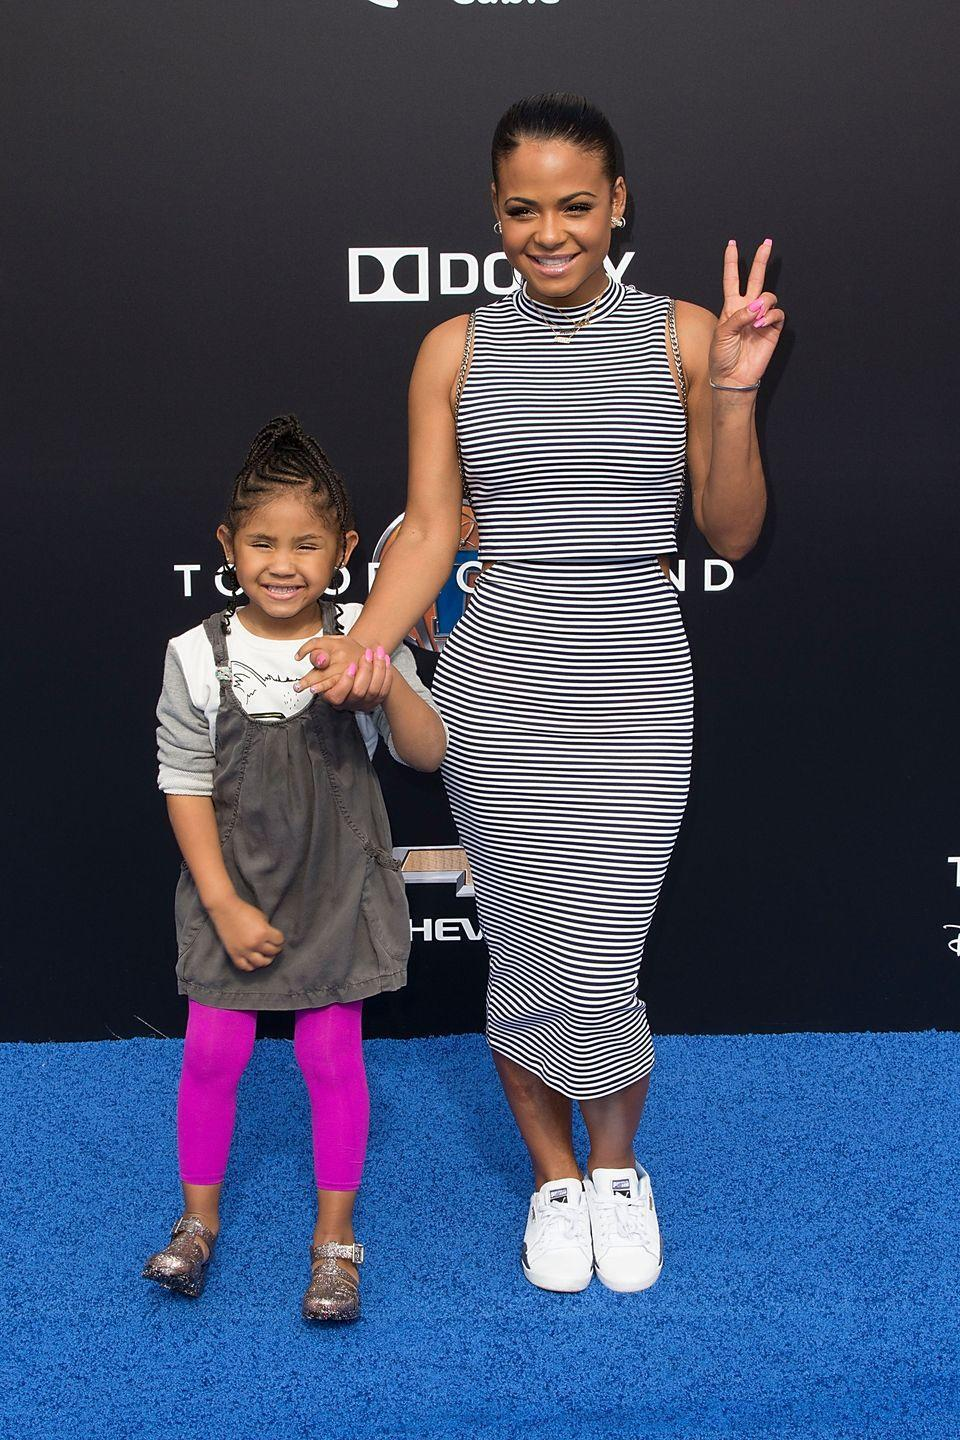 """<p>""""I want to show the example that you can be <a href=""""https://hellobeautiful.com/2766263/christina-milian-being-a-single-mother-can-be-tough-exclusive/"""" rel=""""nofollow noopener"""" target=""""_blank"""" data-ylk=""""slk:a single mother"""" class=""""link rapid-noclick-resp"""">a single mother</a> and work and handle a lot of other things at the same time."""" </p>"""